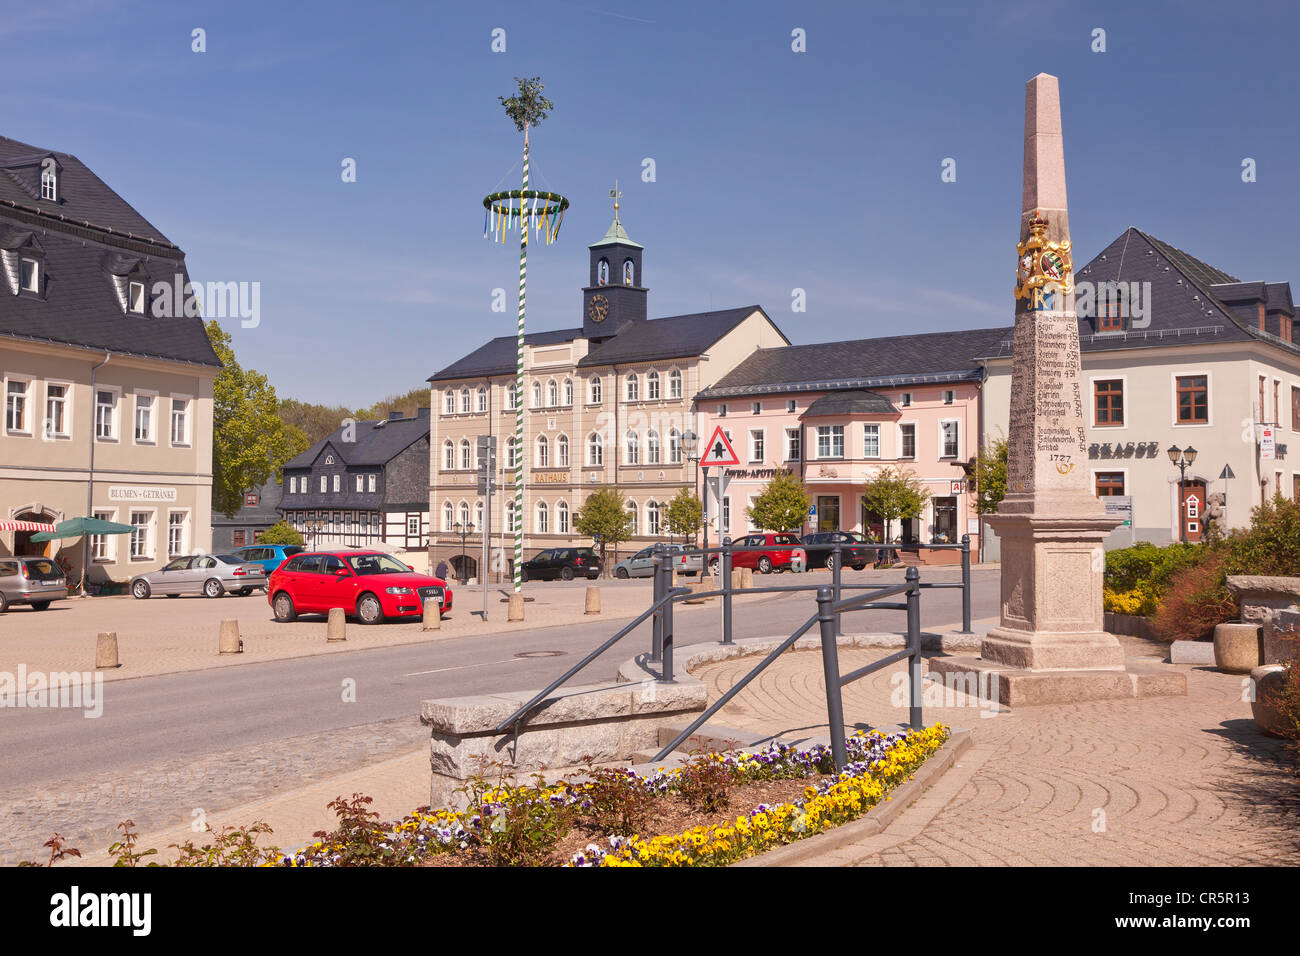 Marketplace with Town Hall, the post mile pillar and a maypole, Zwoenitz, Saxony, Germany, Europe - Stock Image